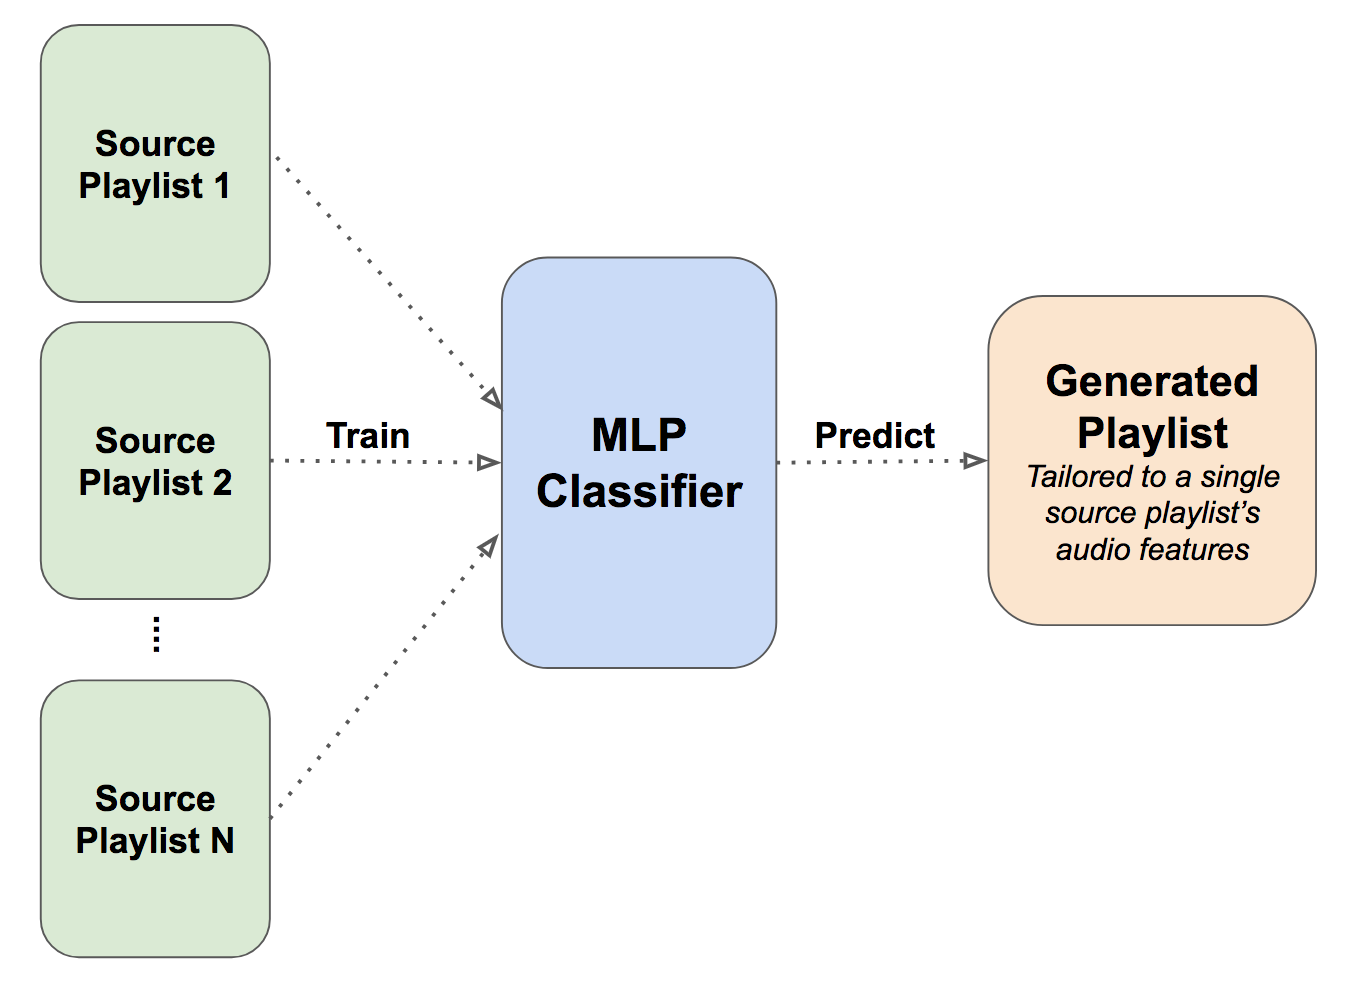 Diagram of Classification and Prediction